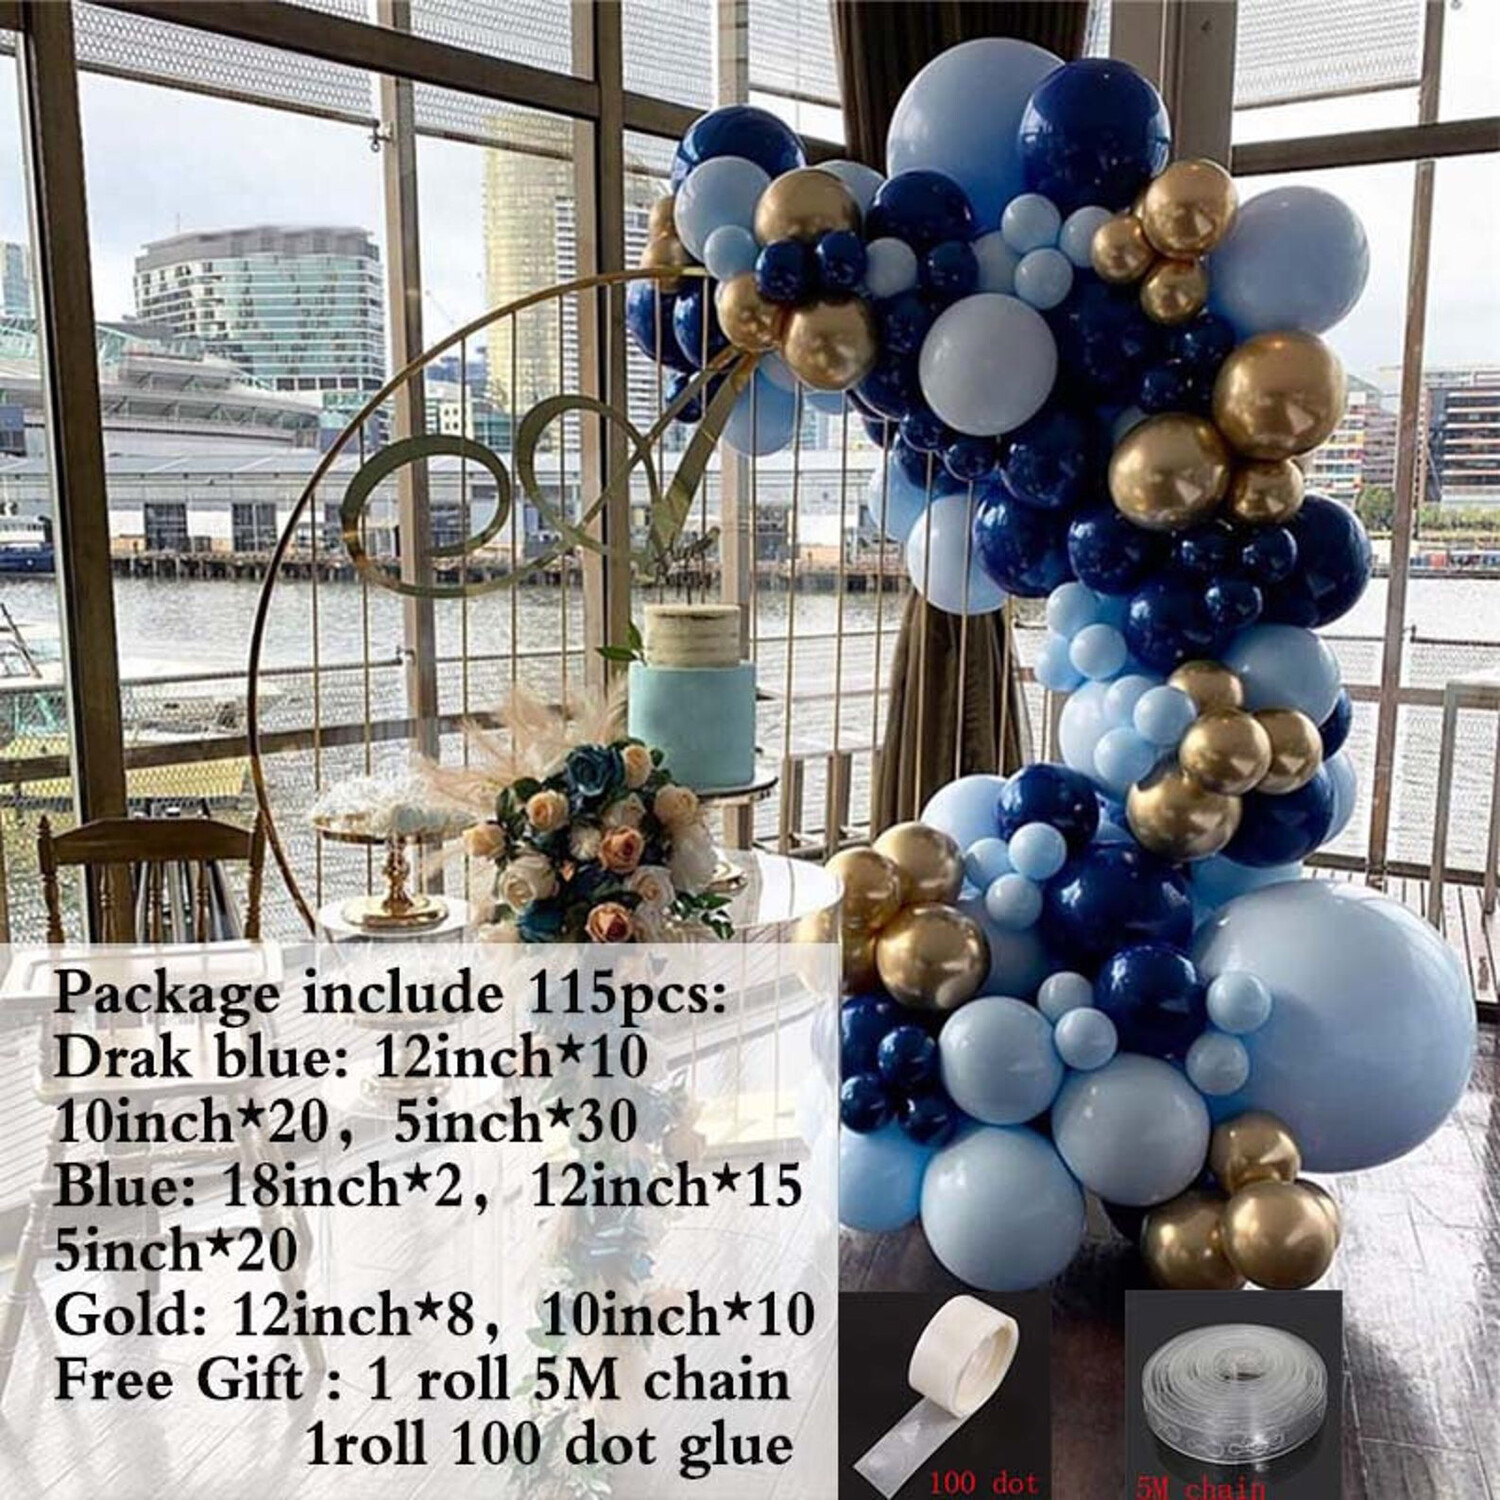 115pcs DIY Blue Balloons Garland Arch Kit Navy Blue Gold Balloon For Baby Shower Birthday Wedding Party Decoration Balloons Supplies